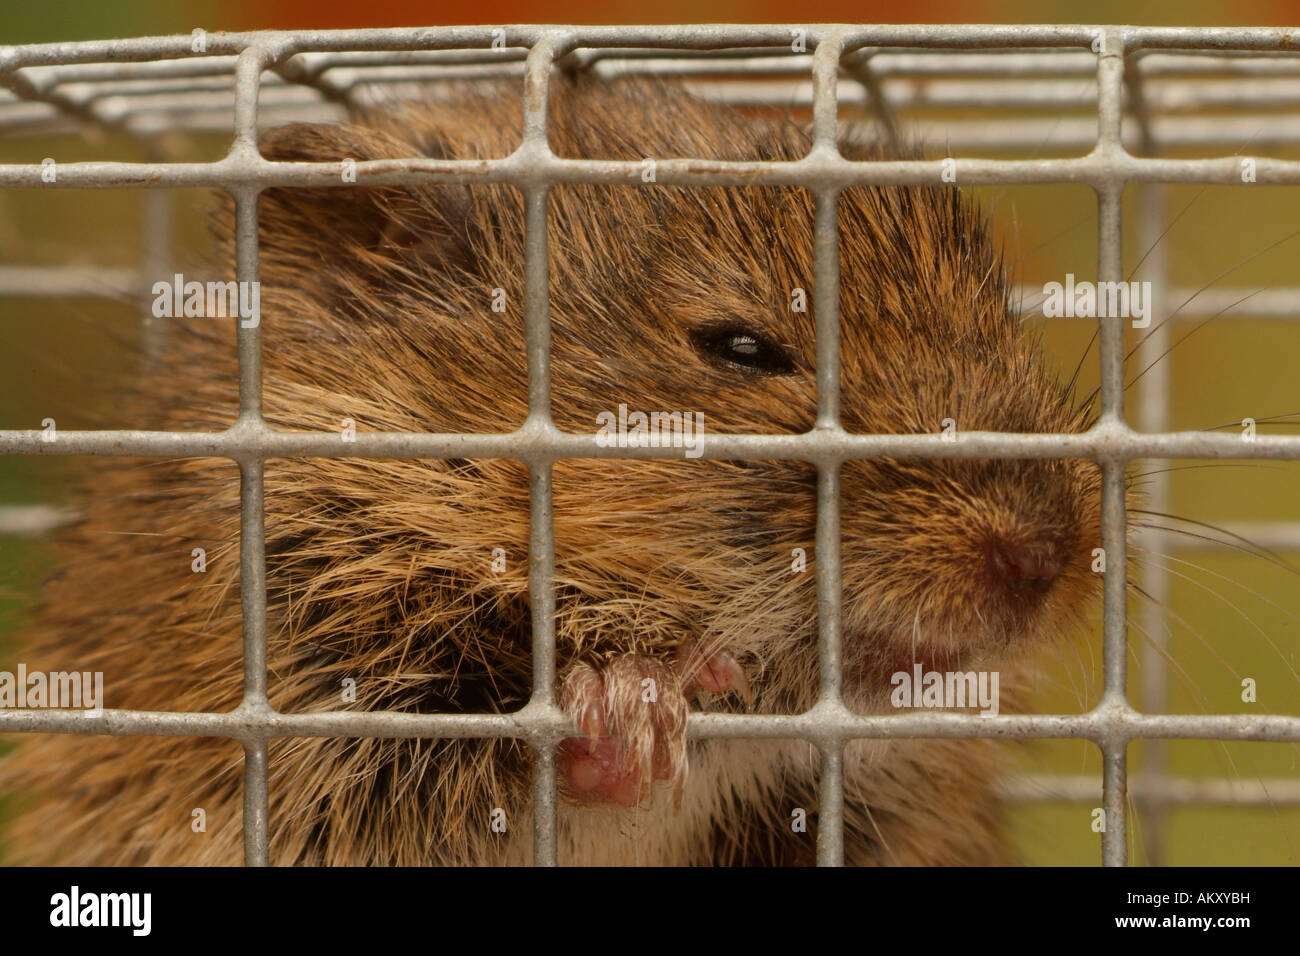 Common vole (Microtus arvalis) in a mousetrap Stock Photo